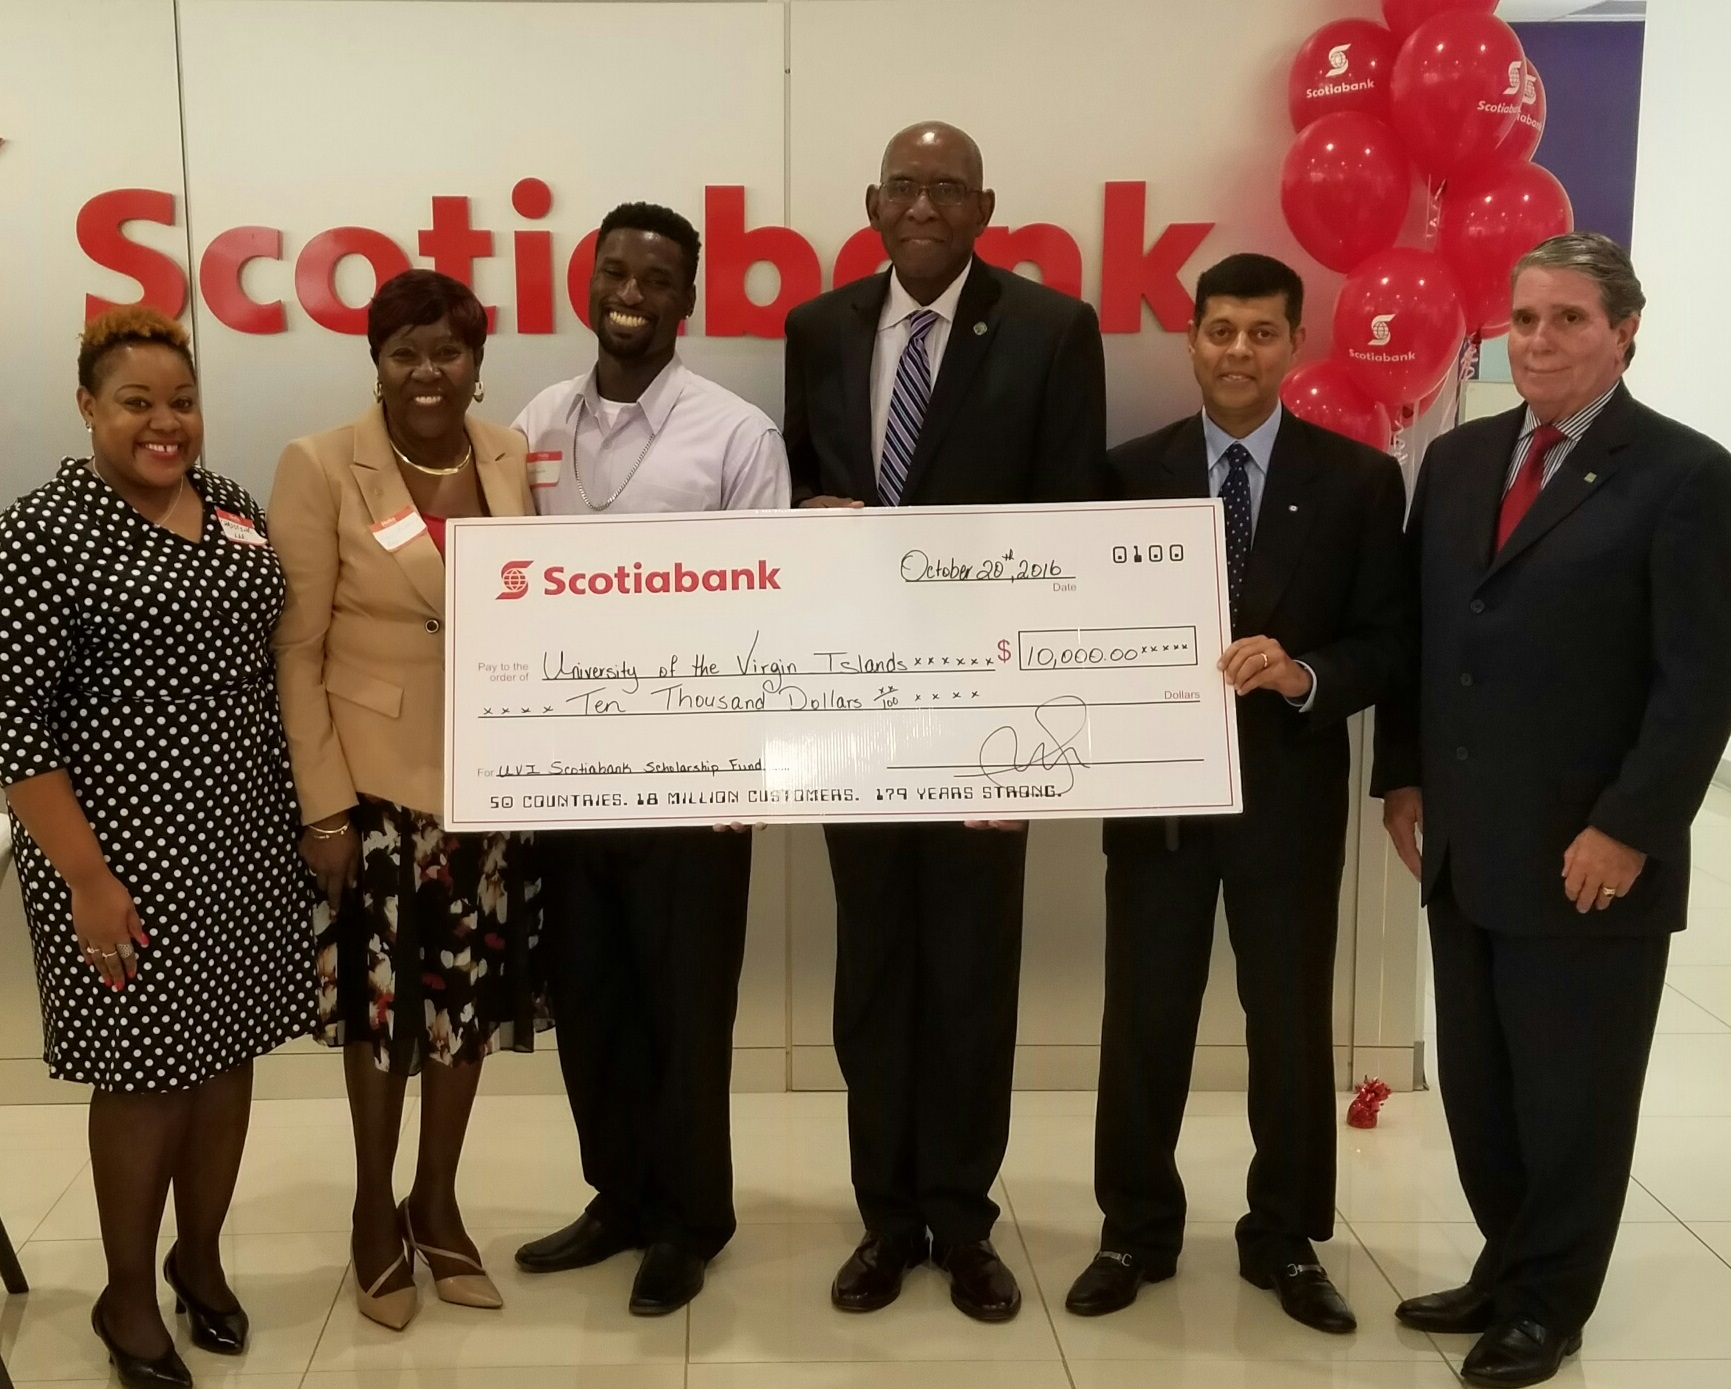 Scotiabank donates $10,000 to two UVI students from St. Croix and St. Thomas.